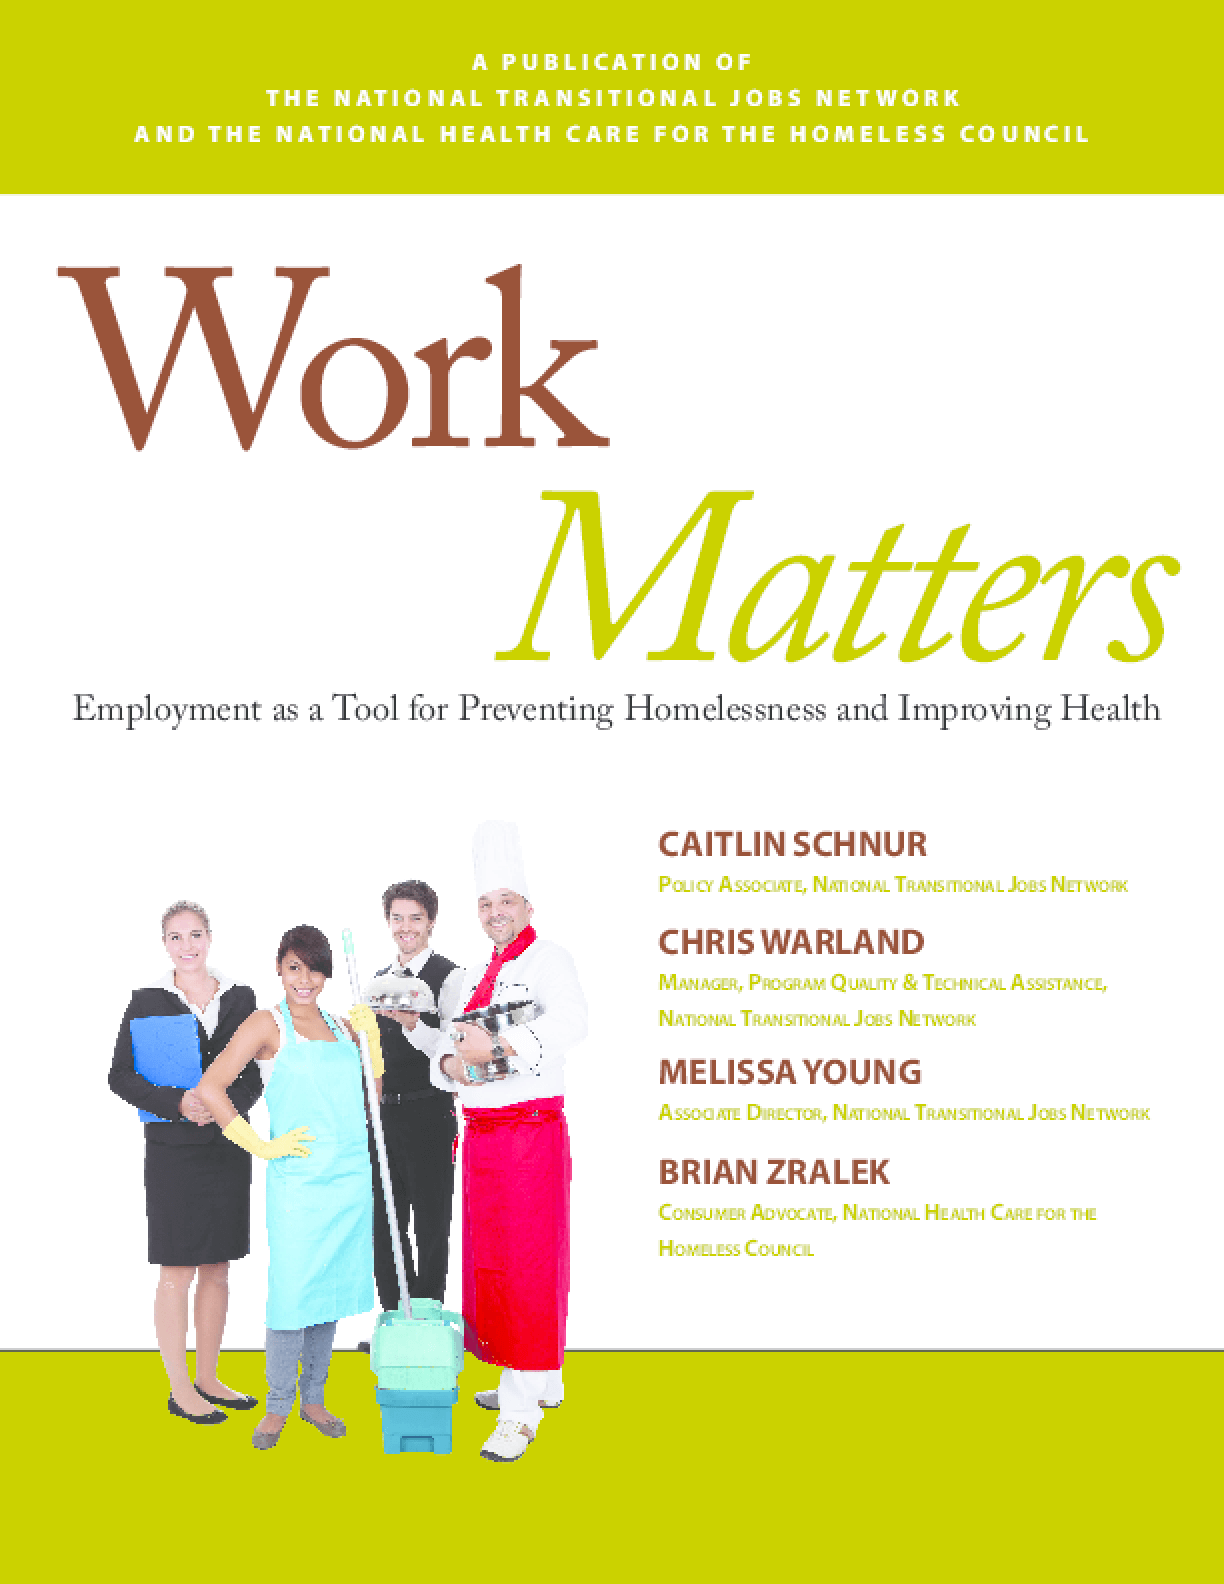 Work Matters: Employment as a Tool for Preventing Homelessness and Improving Health